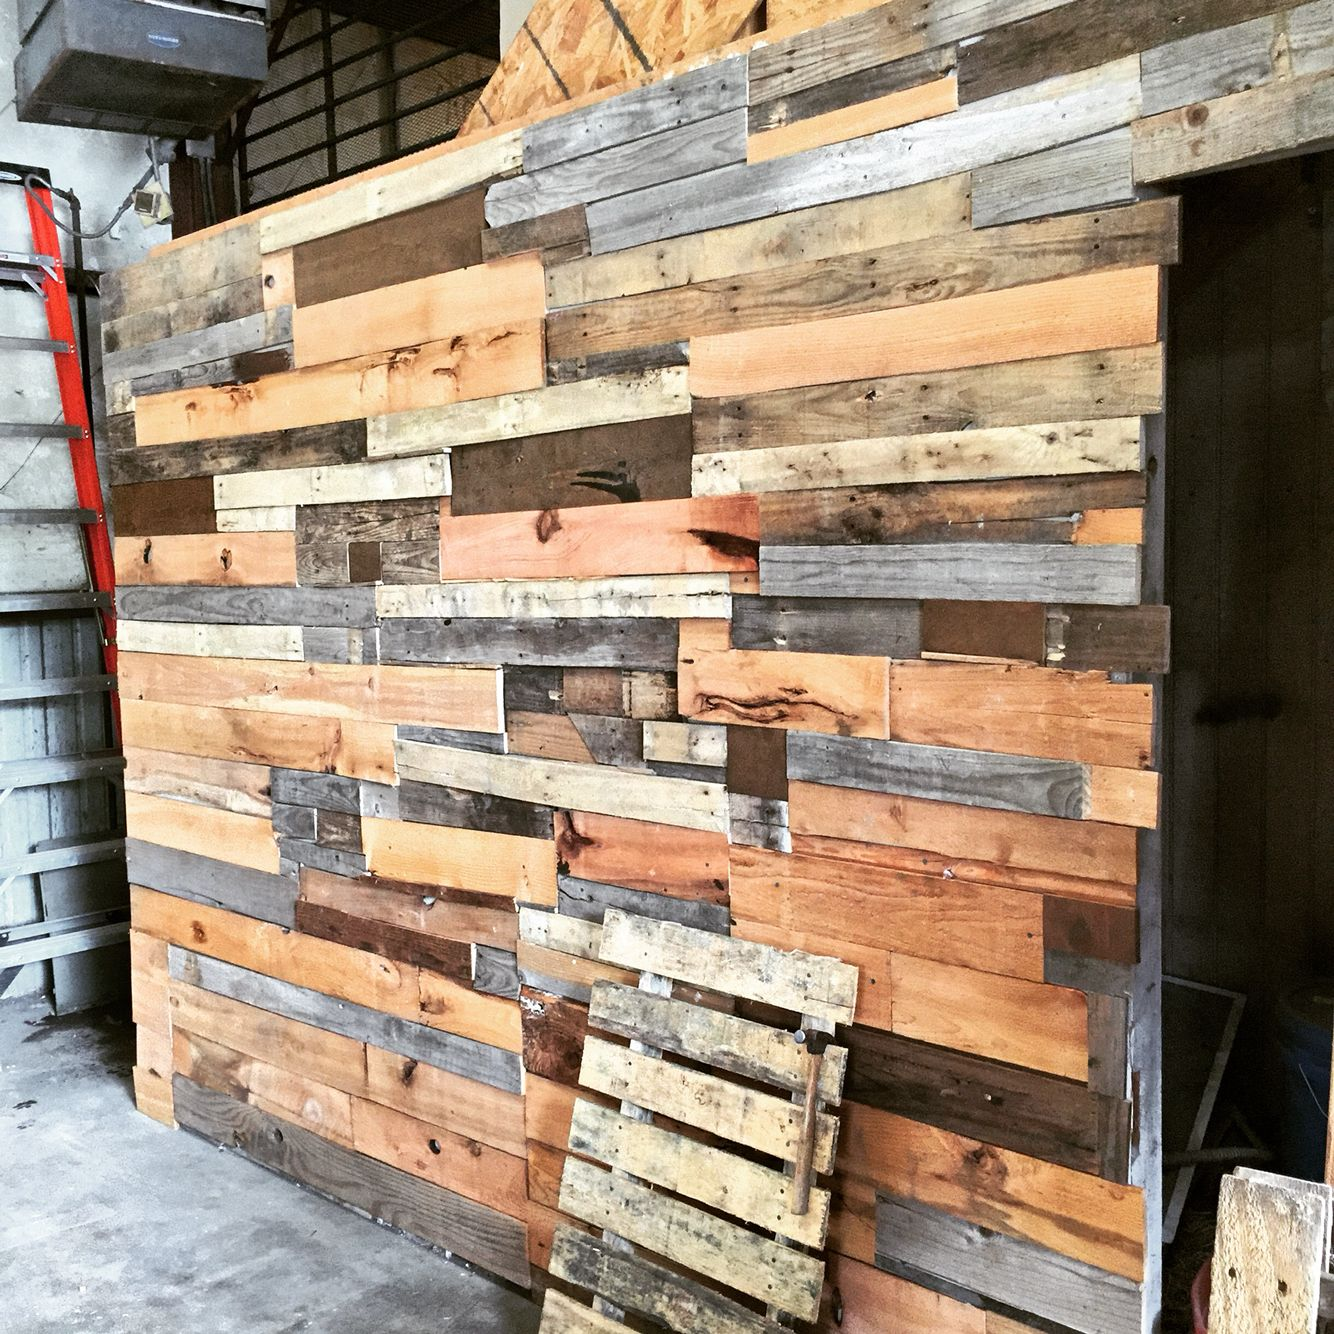 Pallet Wall Paneling : Wall panel inside industrial warehouse made from pallet